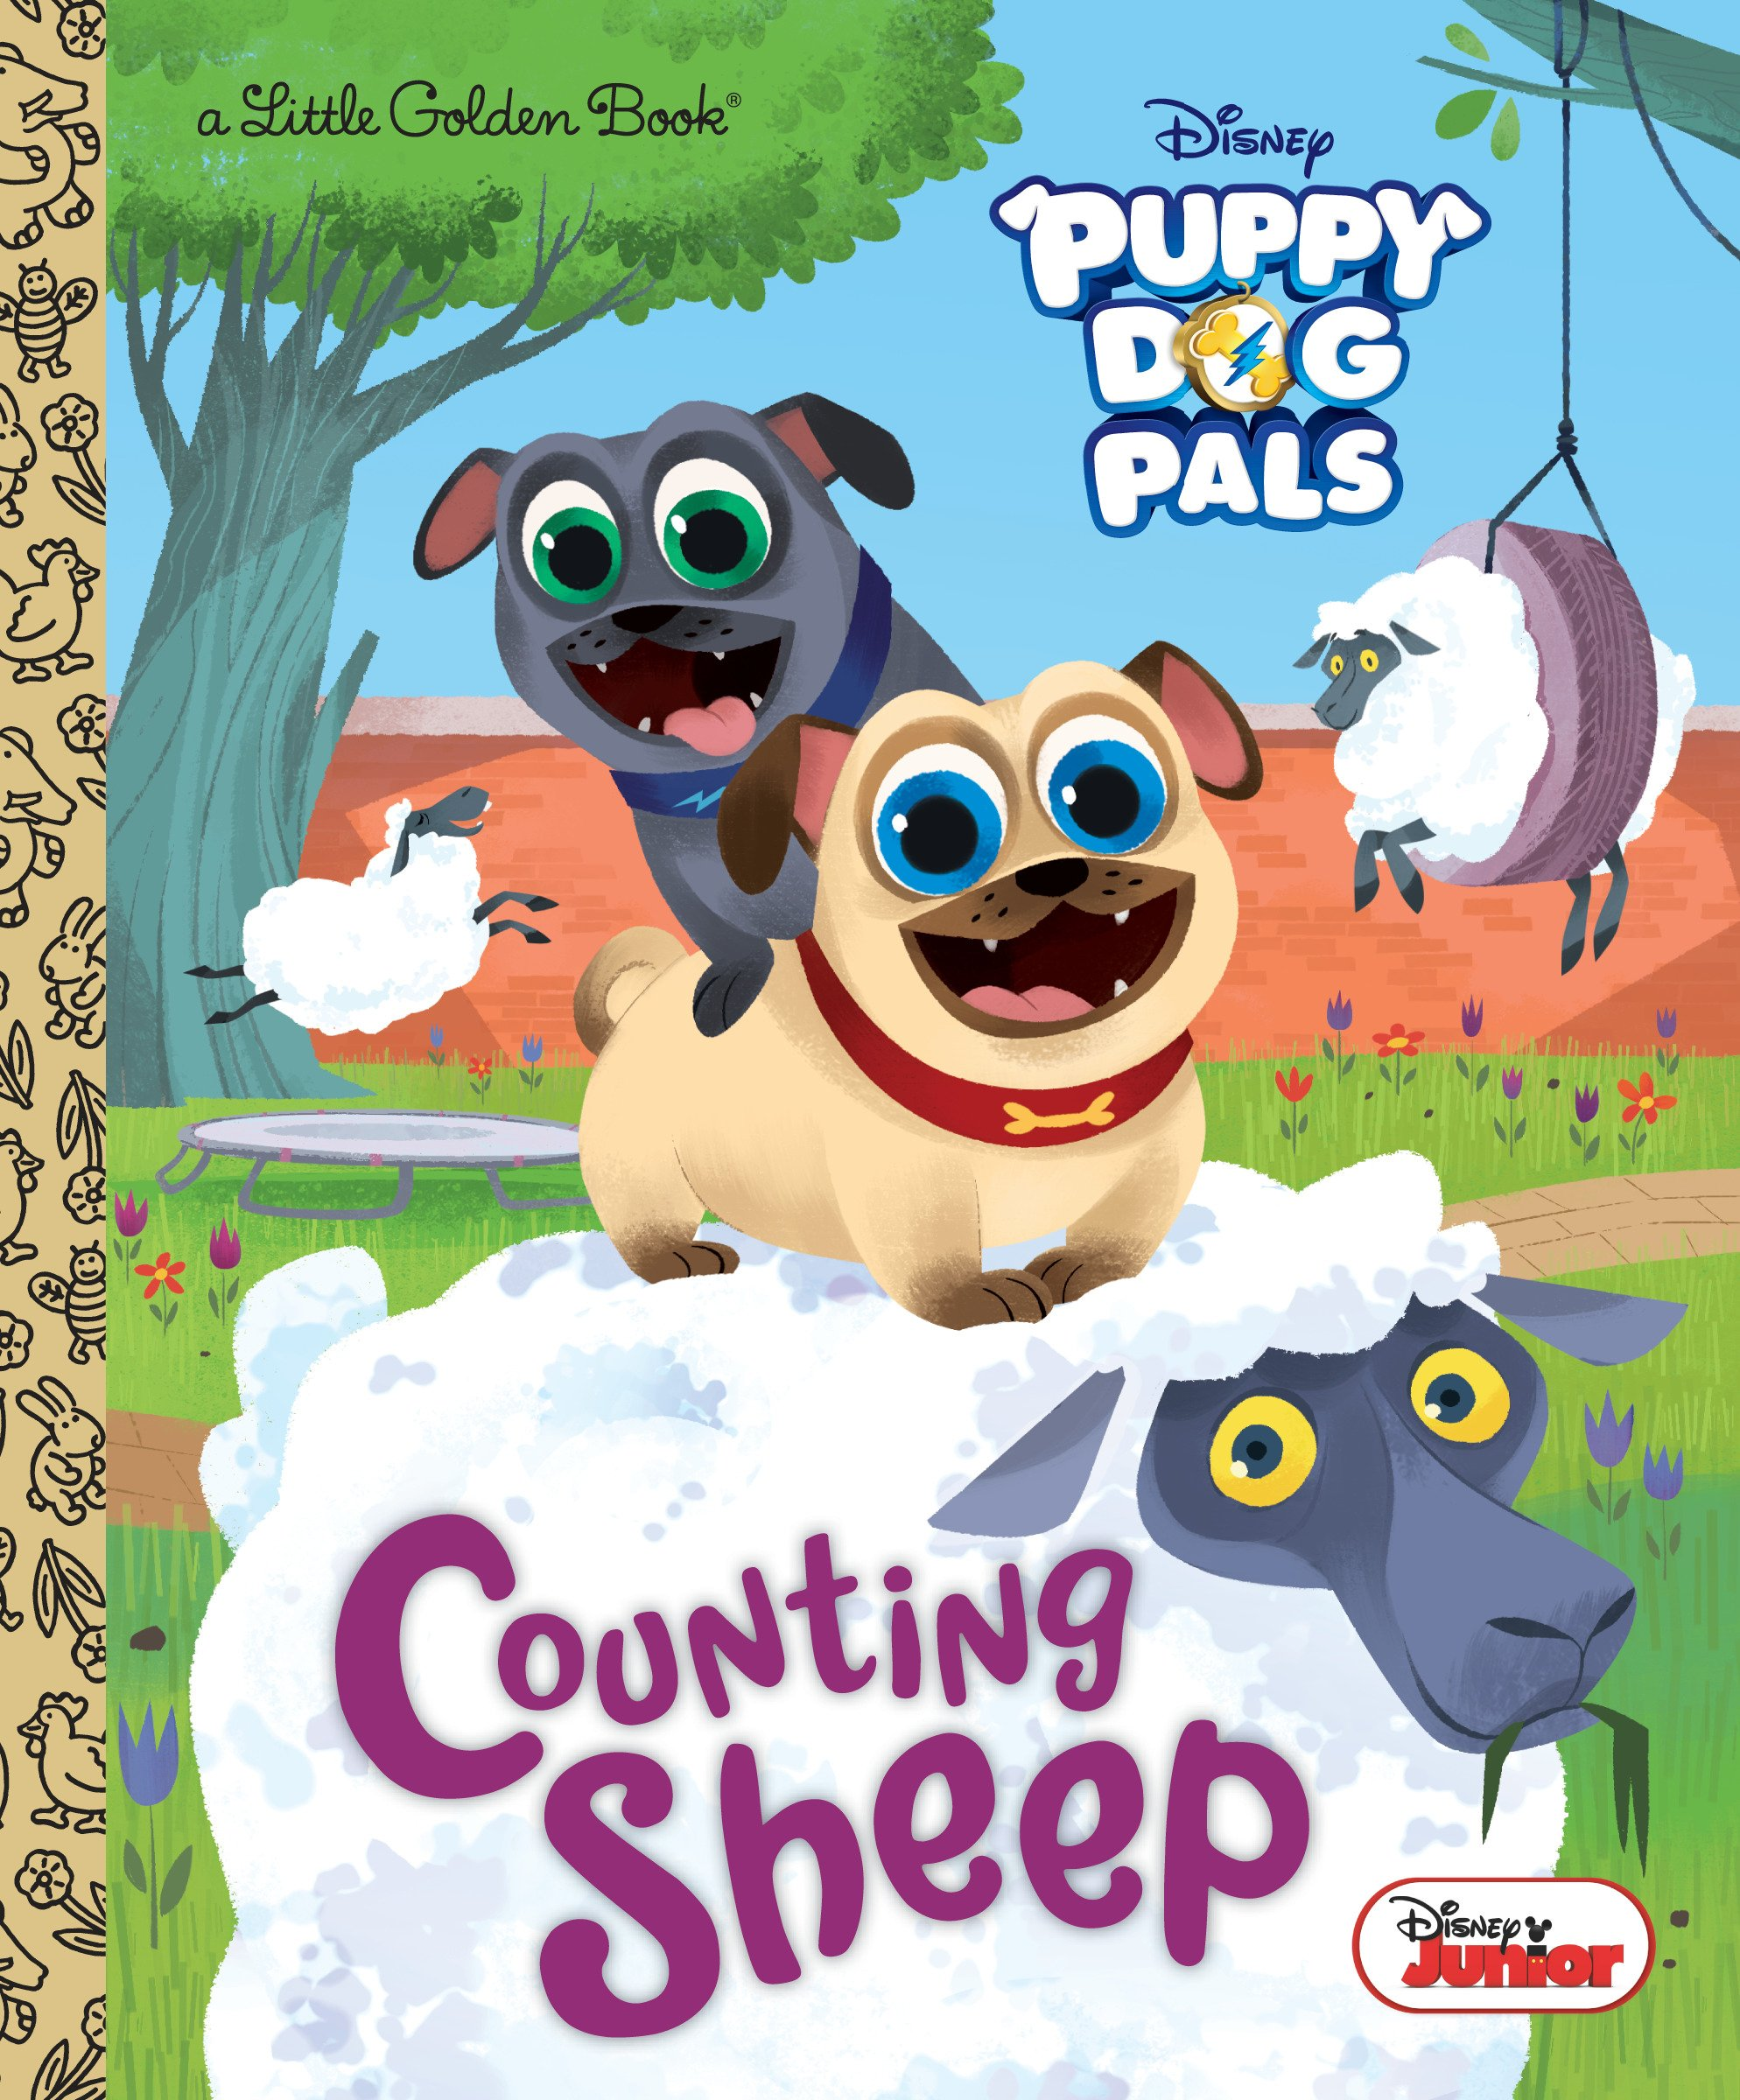 Counting Sheep (Disney Junior Puppy Dog Pals) (Little Golden Book)  Hardcover – January 8, 2019